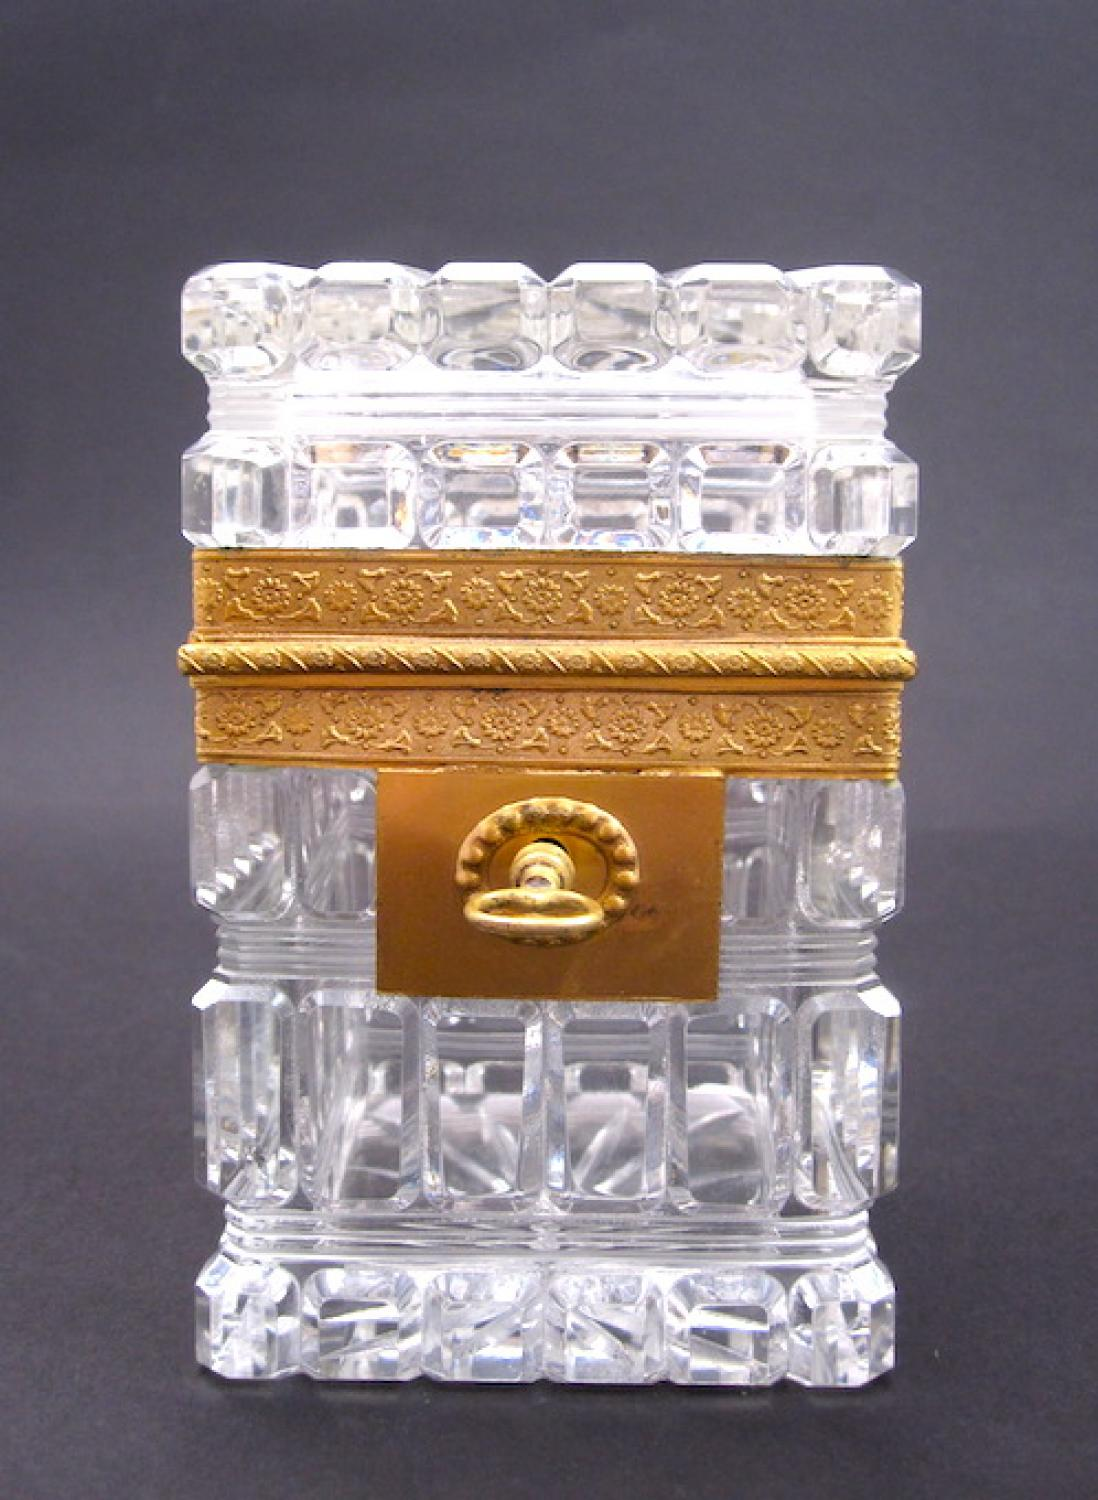 Antique Baccarat Cut Crystal Casket Box & Key